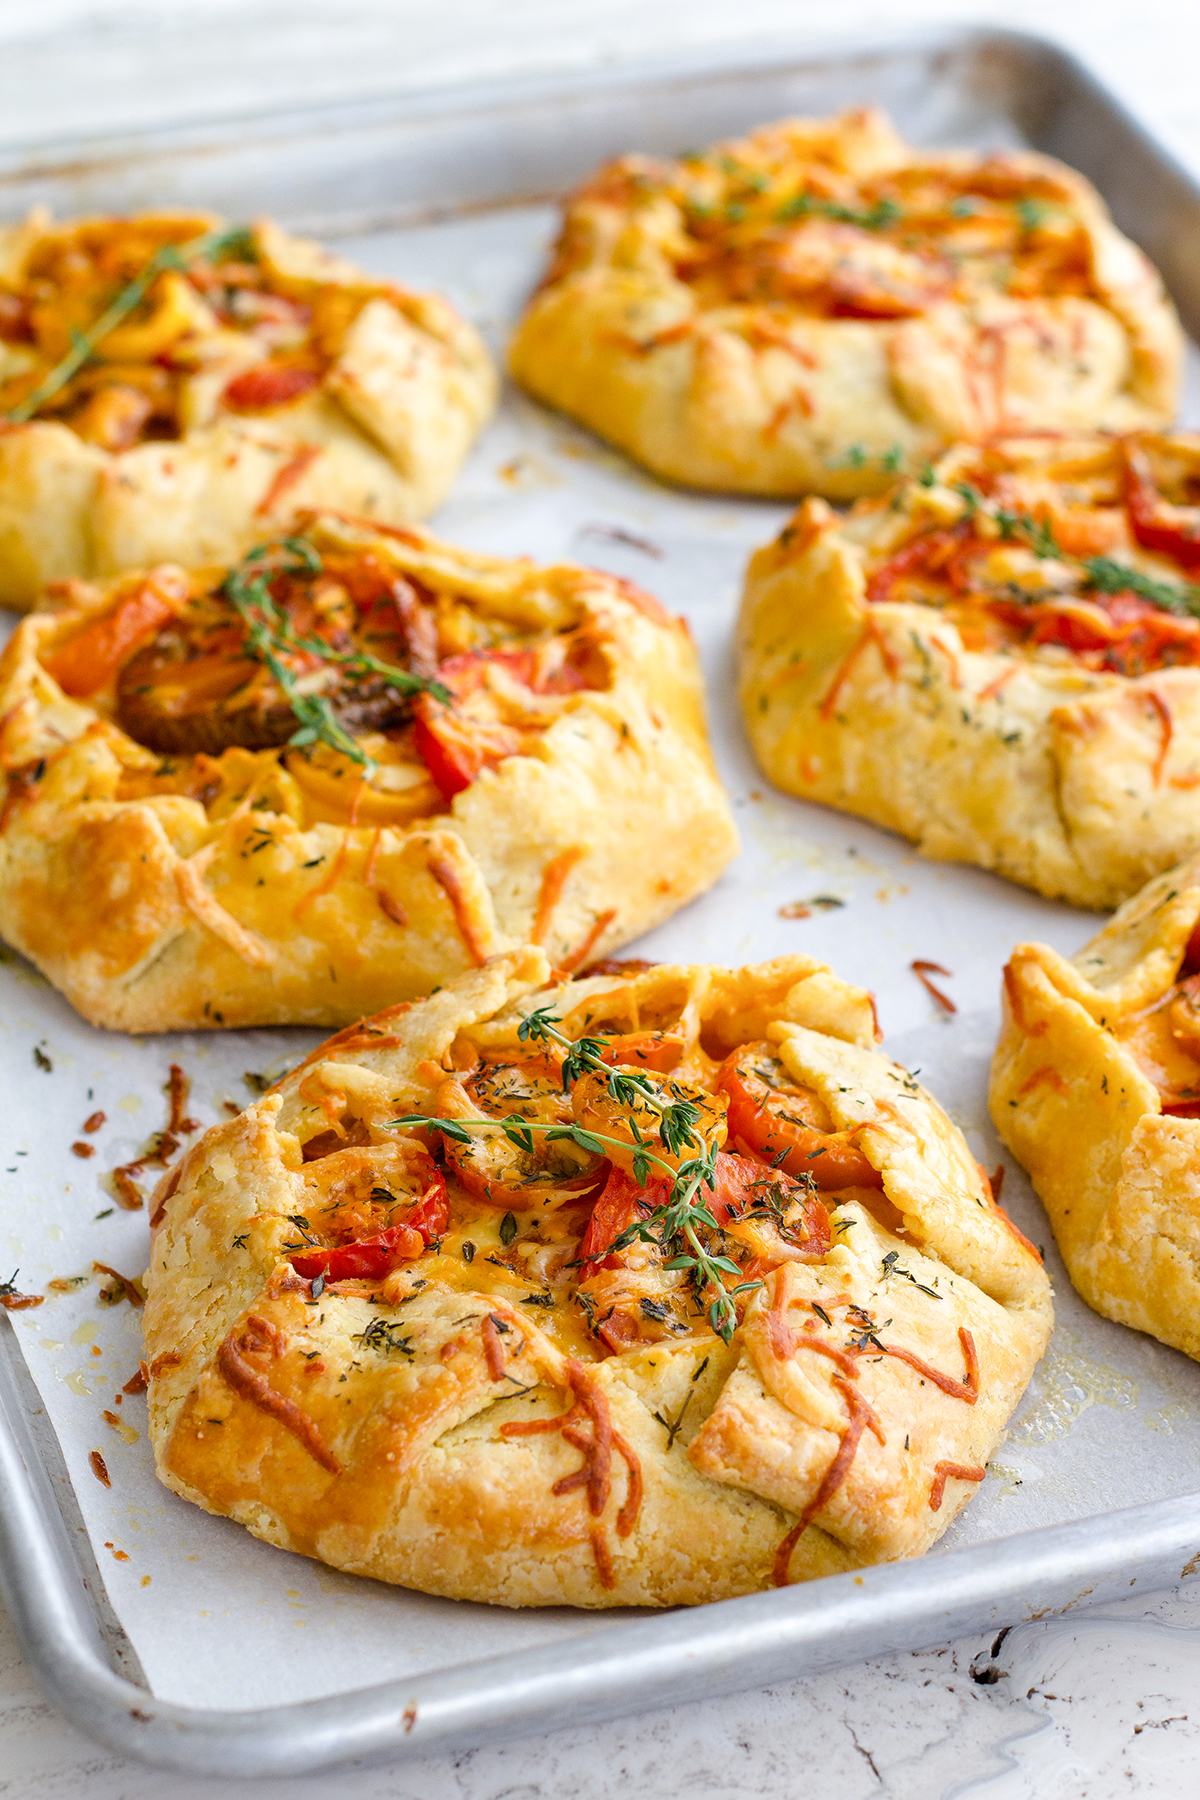 Tender cornmeal crust cradles garden fresh tomatoes, thyme, cheddar and gouda in a savory galette that's ideal for a weekend brunch or intimate gathering. Herbed Tomato Galette recipe at www.designsofanykind.com